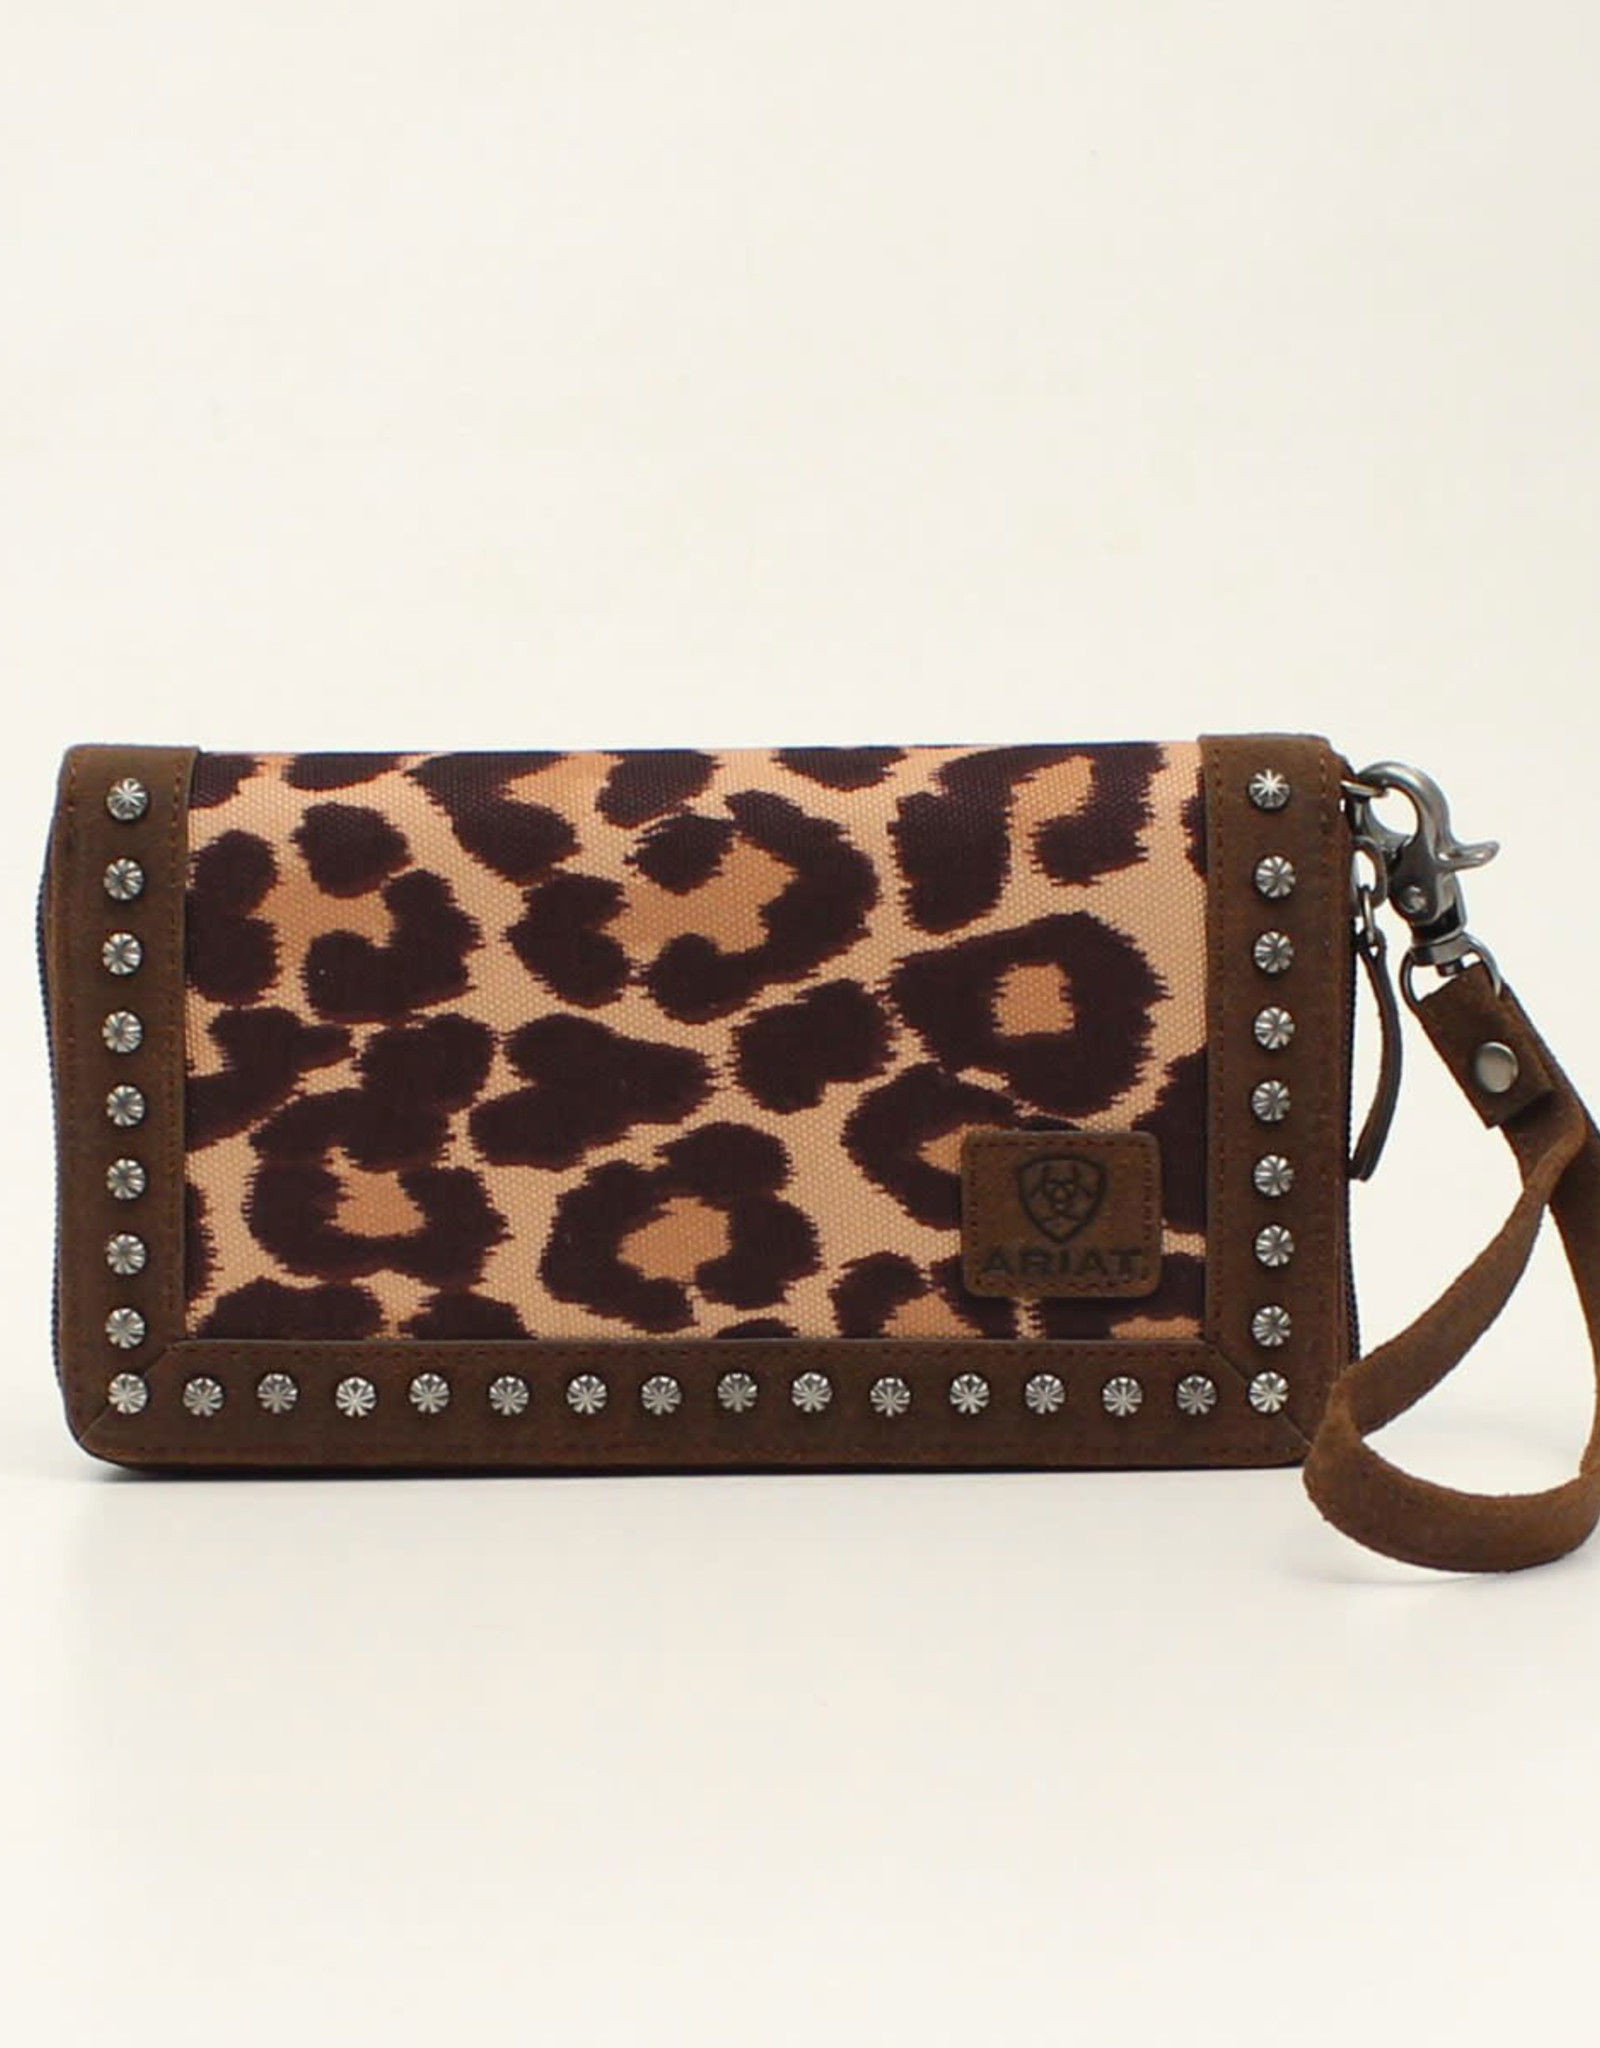 Ariat Ariat Matching Cruiser Wallet Brown Leopard Print